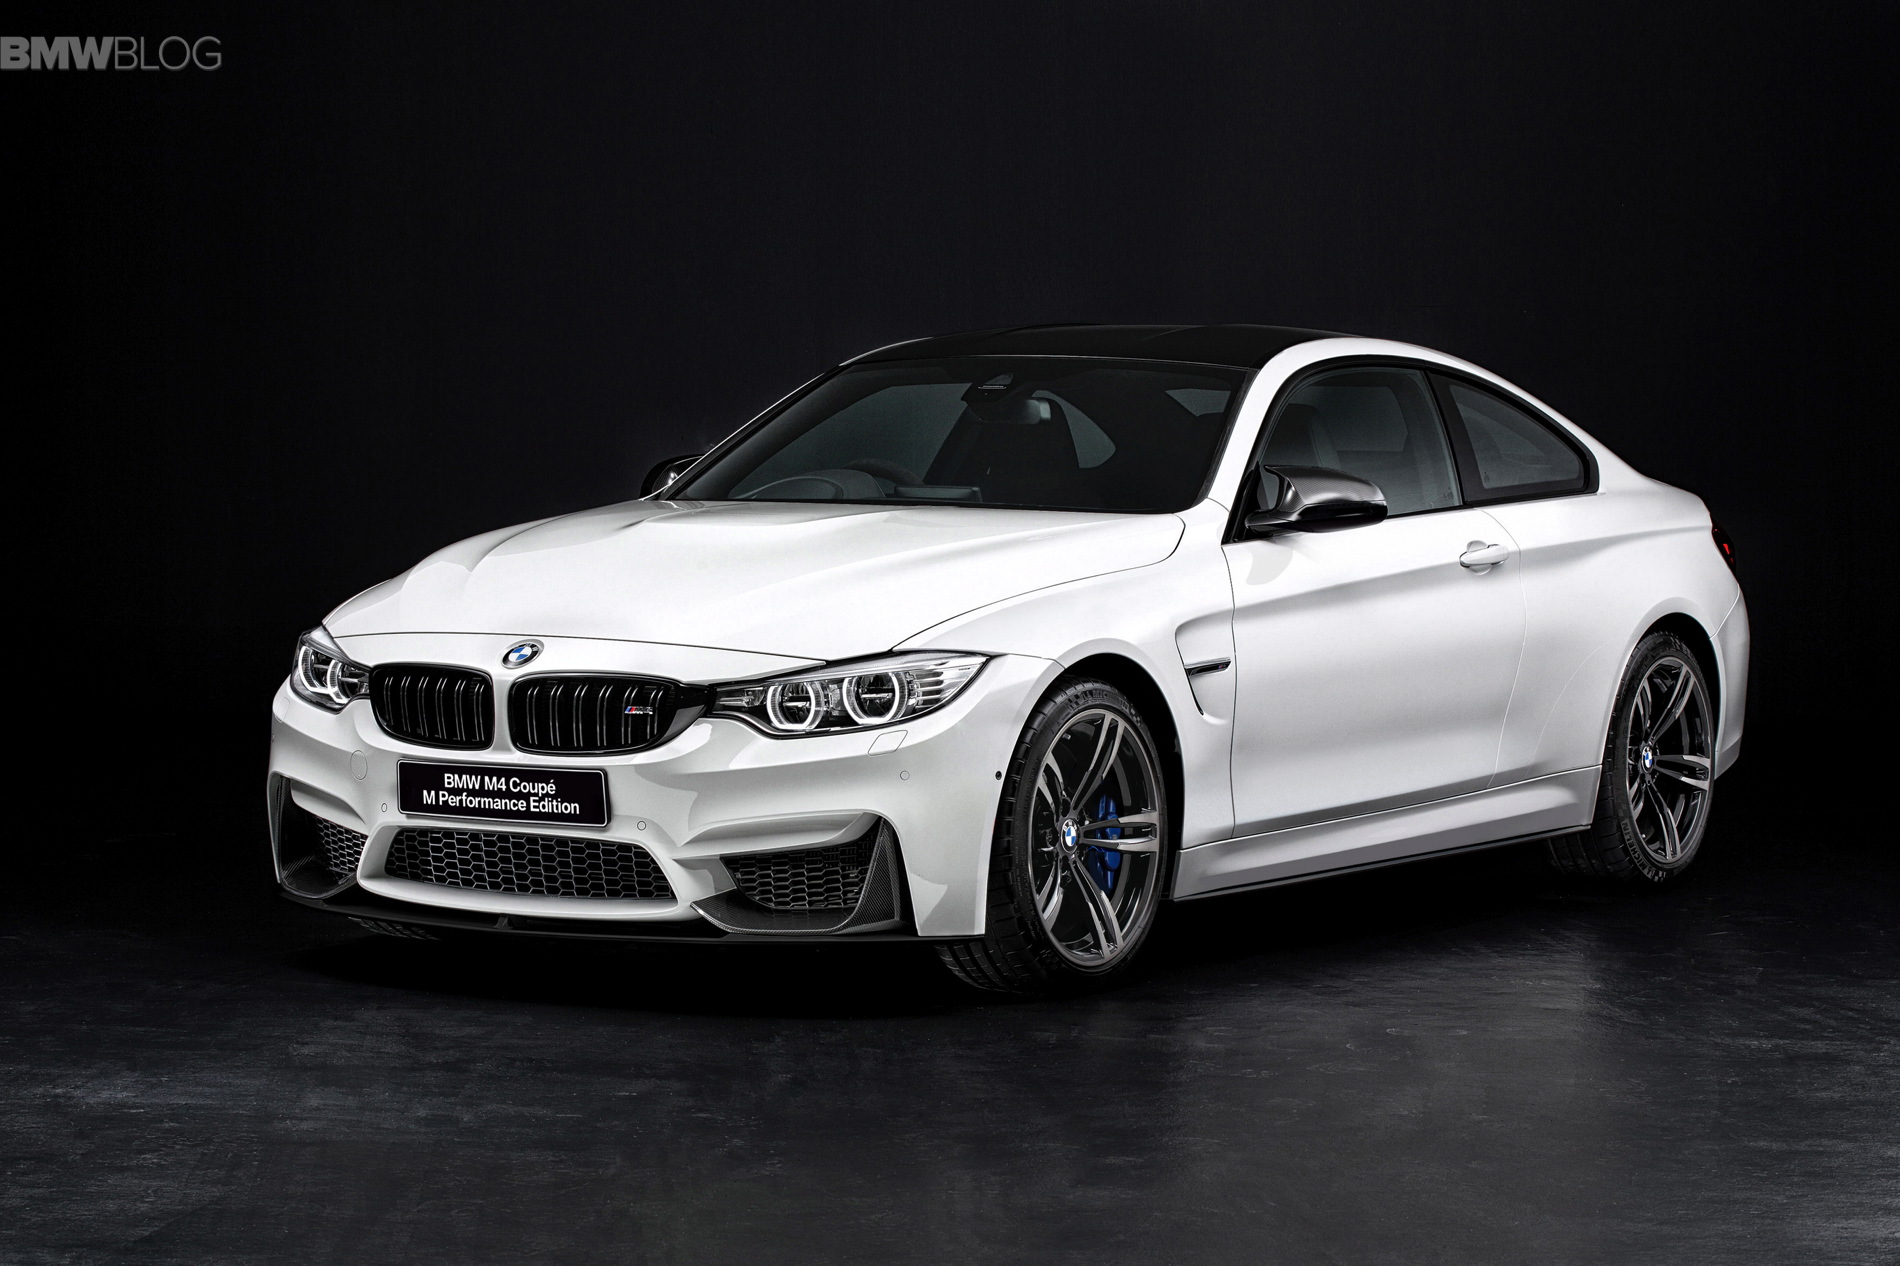 BMW M4 Coupe M Performance Edition for Japan images 02